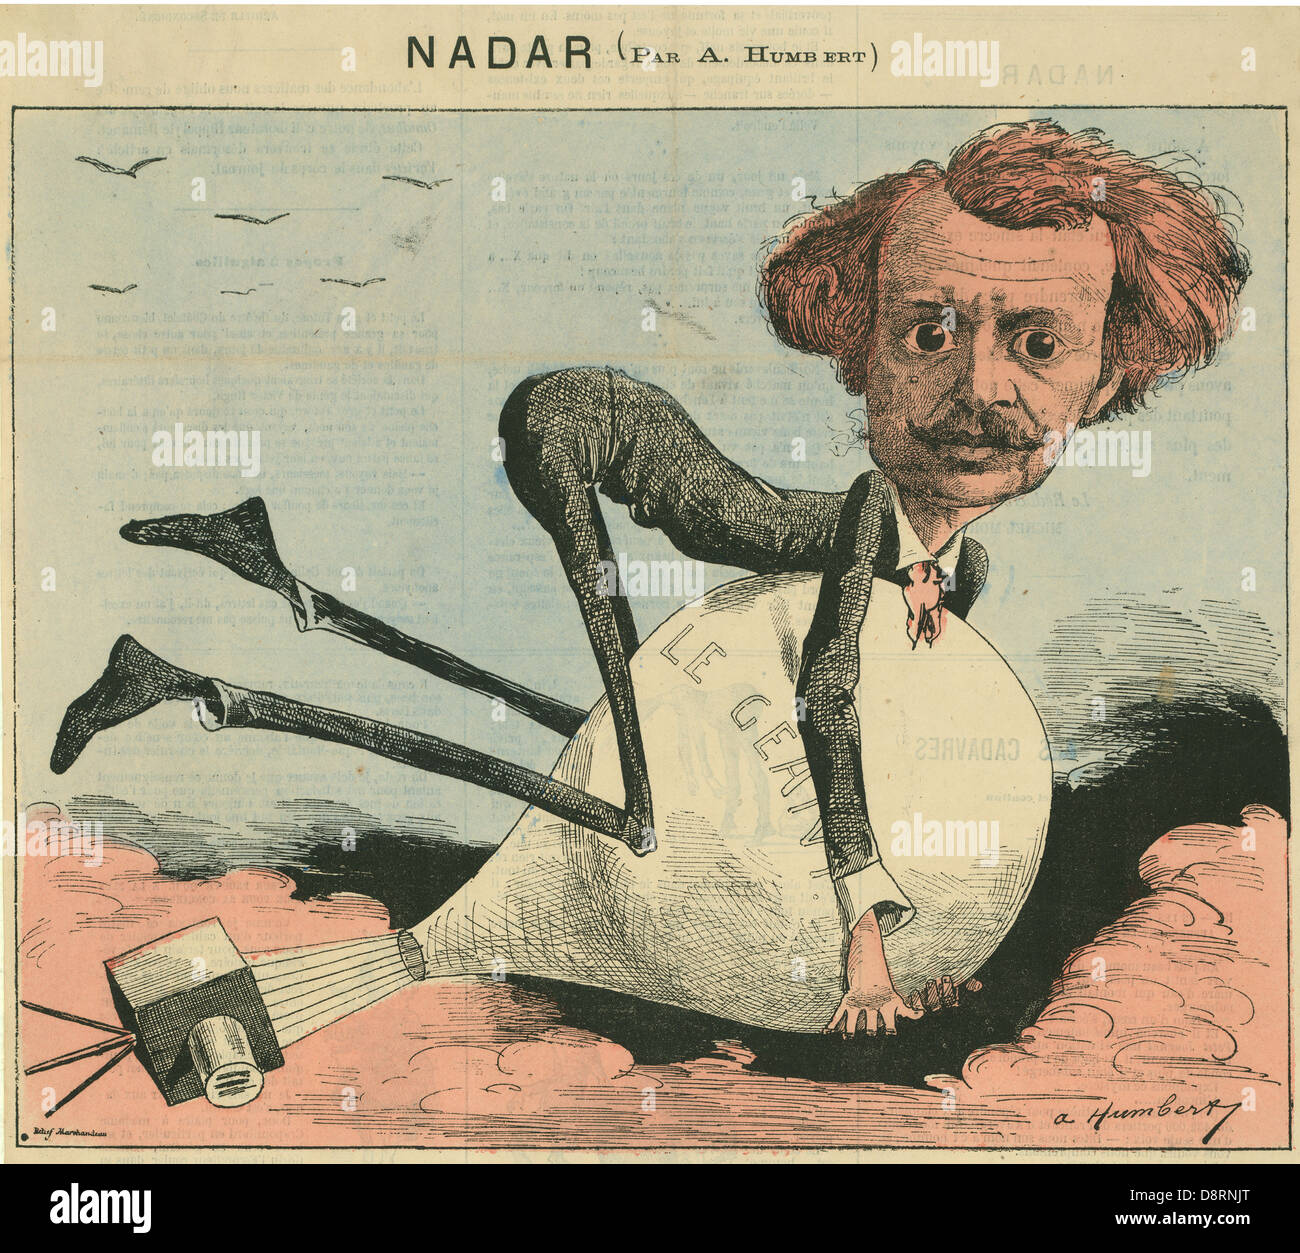 Albert Humbert 1863 French caricature of photographer and balloonist Nadar - Stock Image